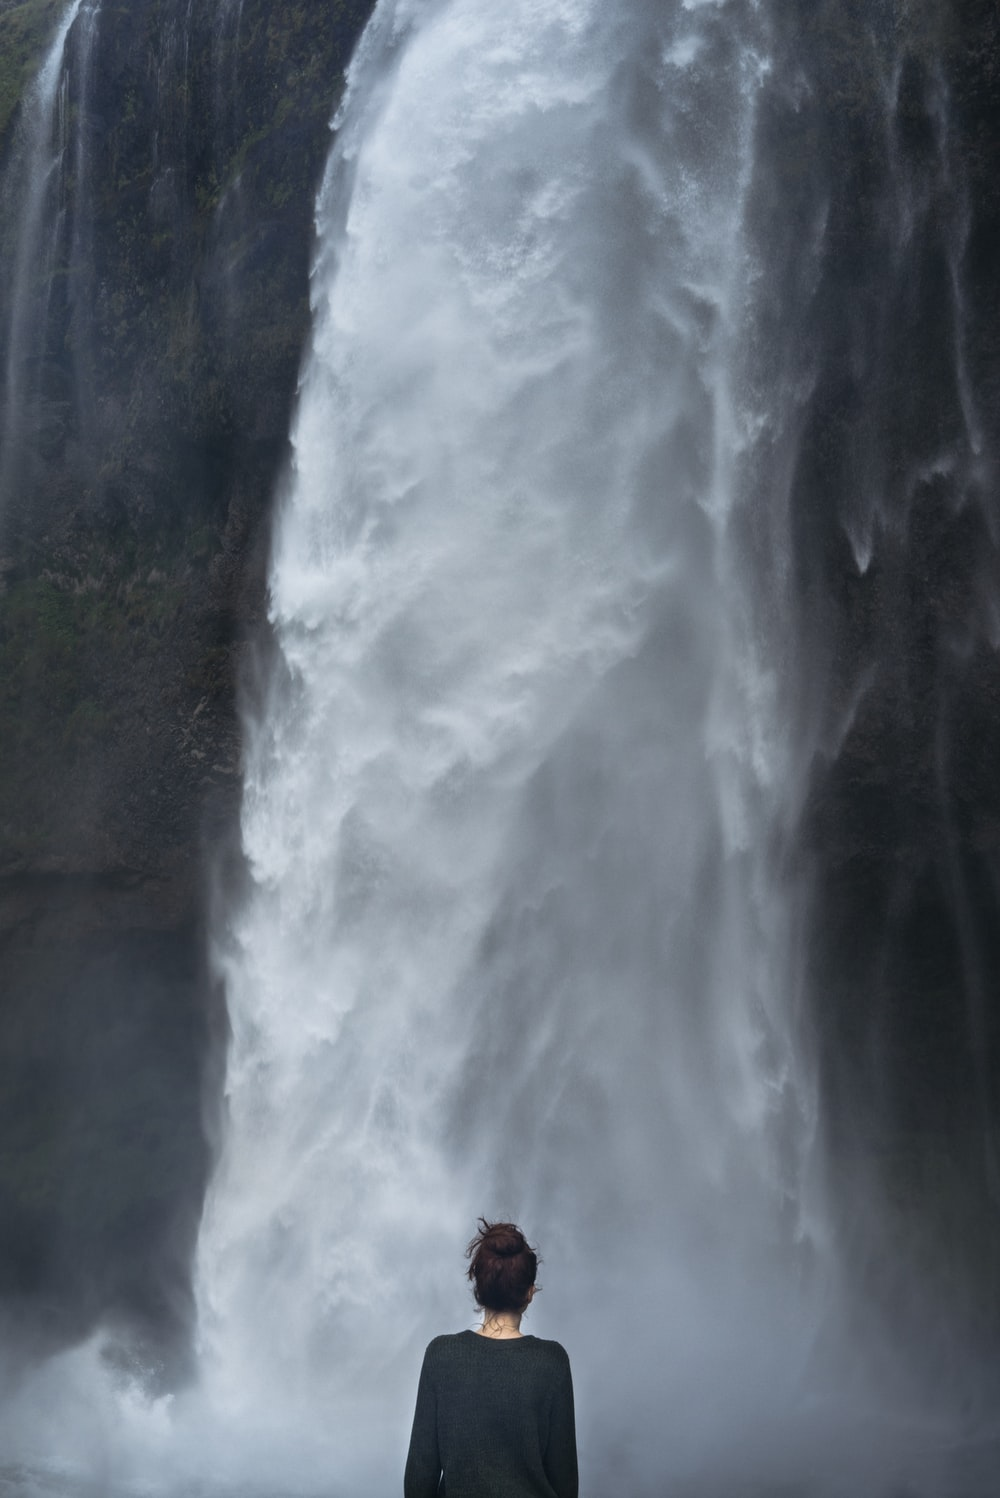 woman in black long-sleeved shirt standing near falls